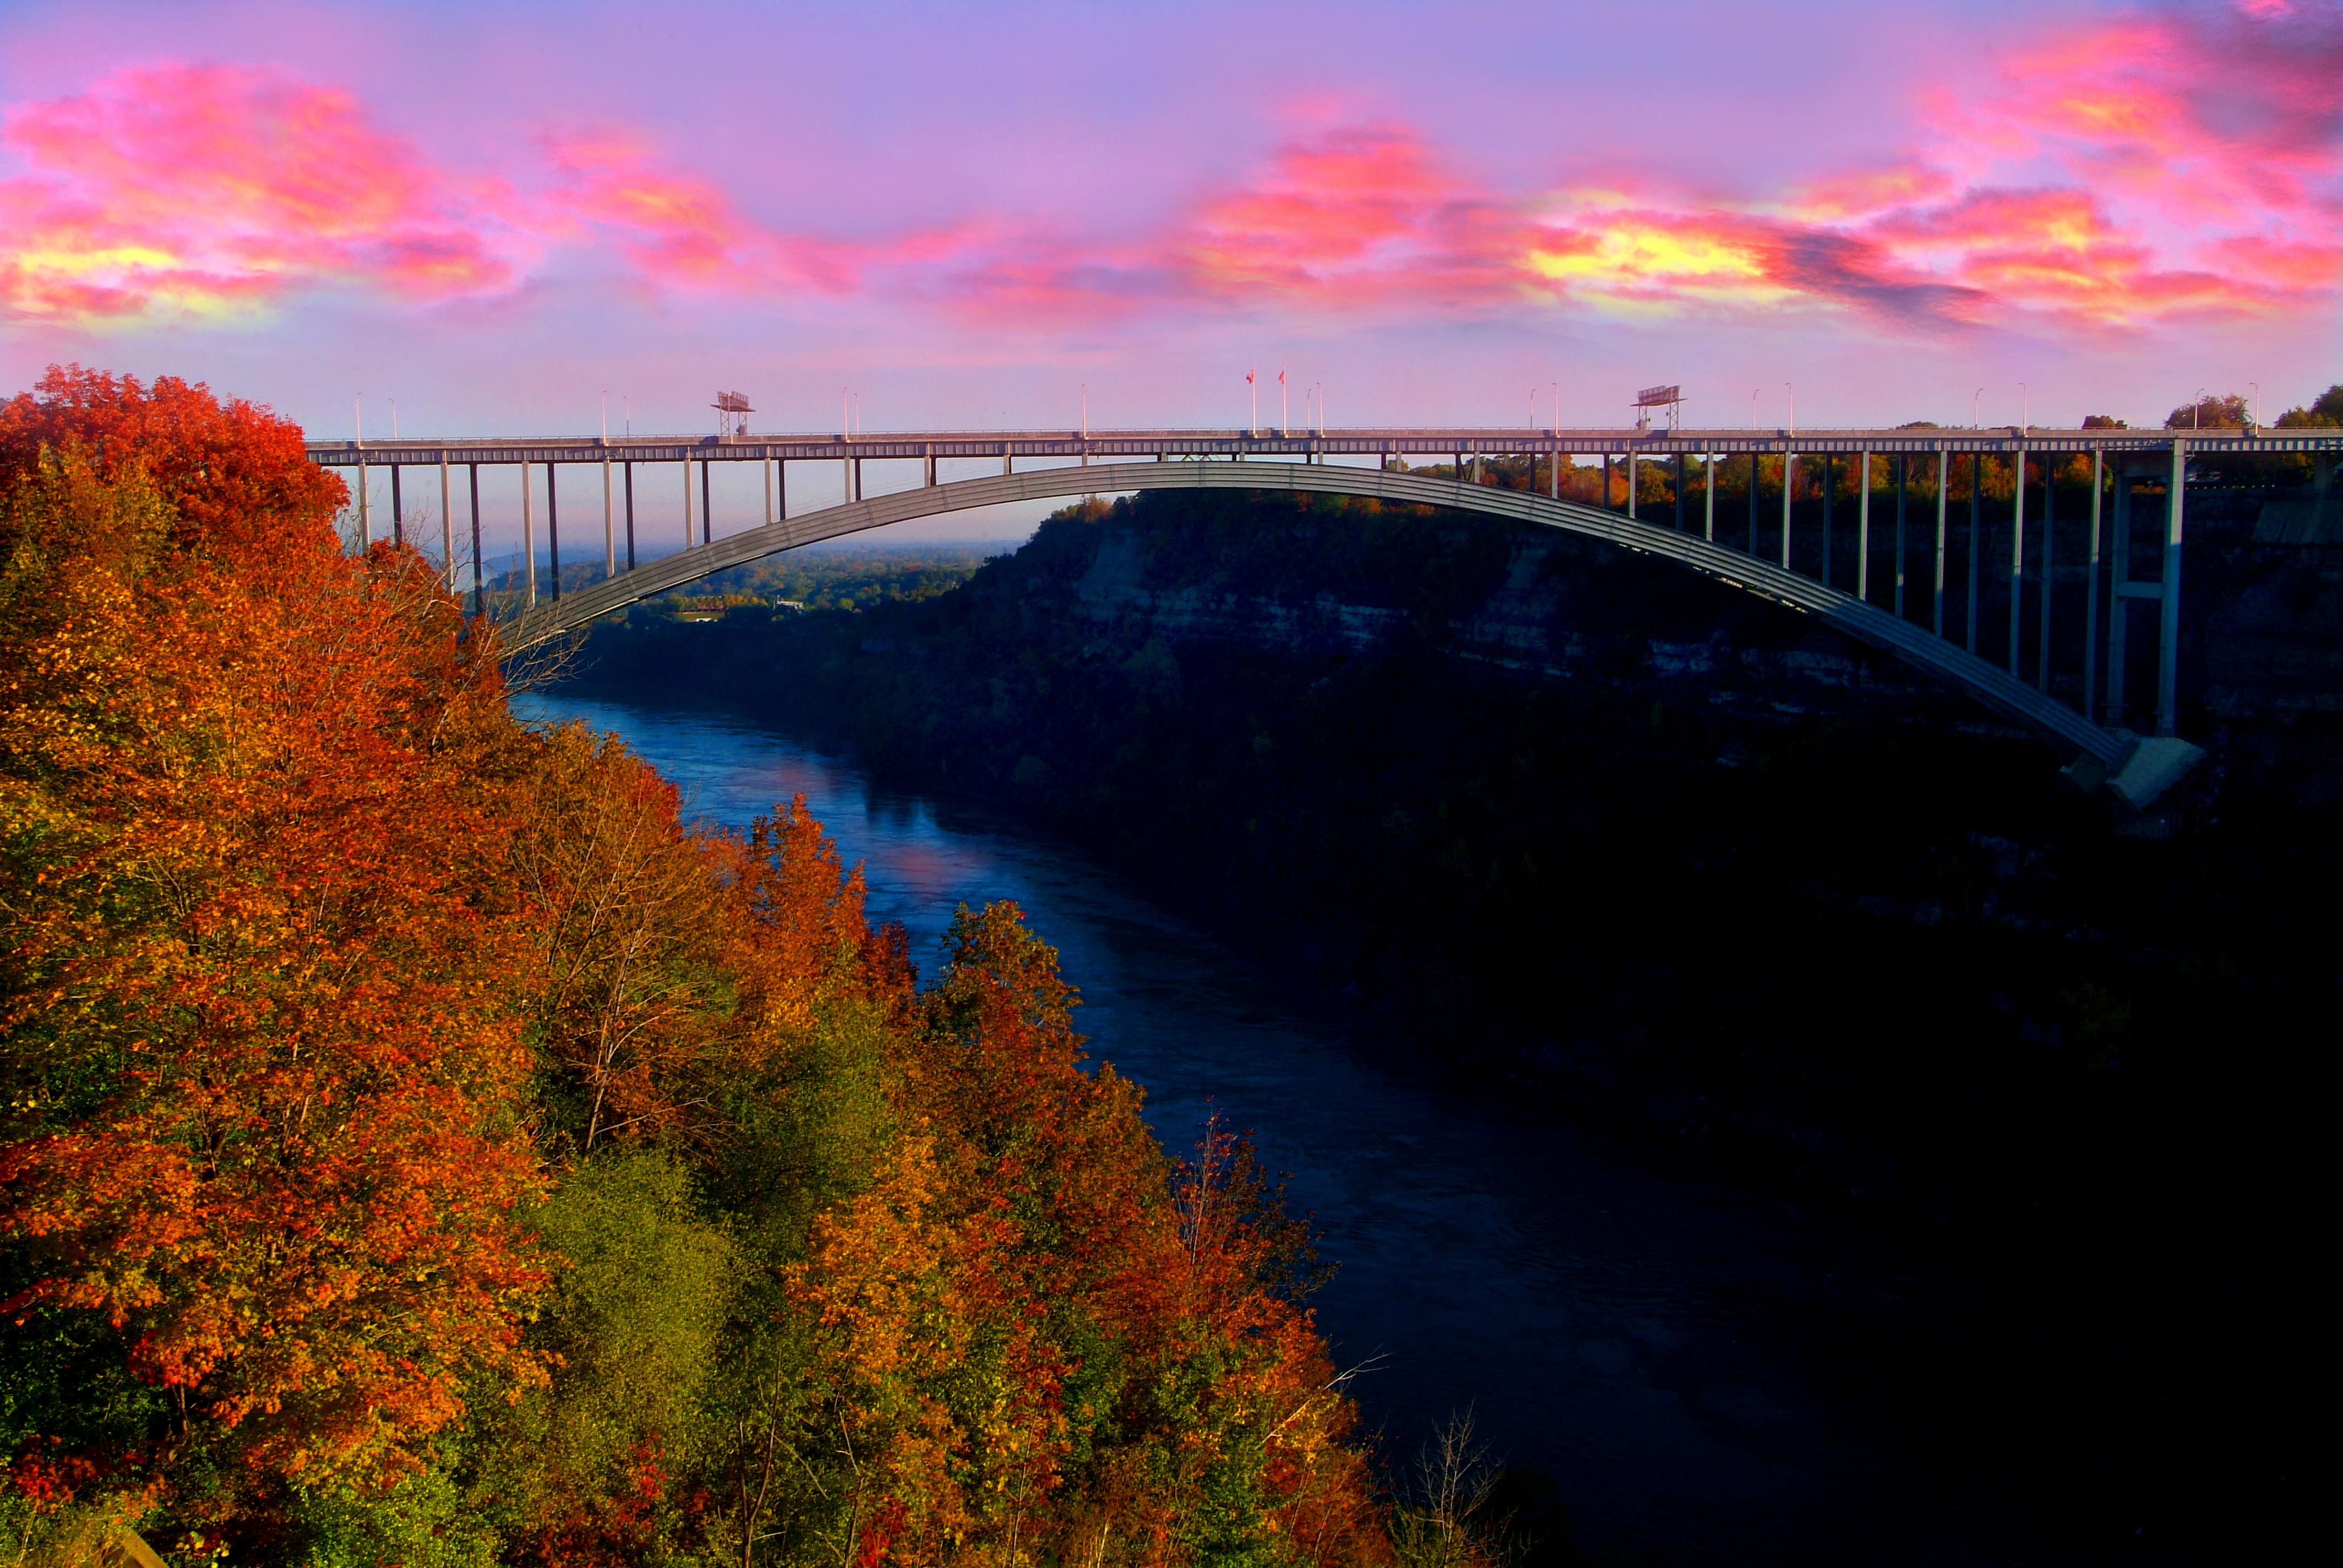 Lewiston Queenston Bridge